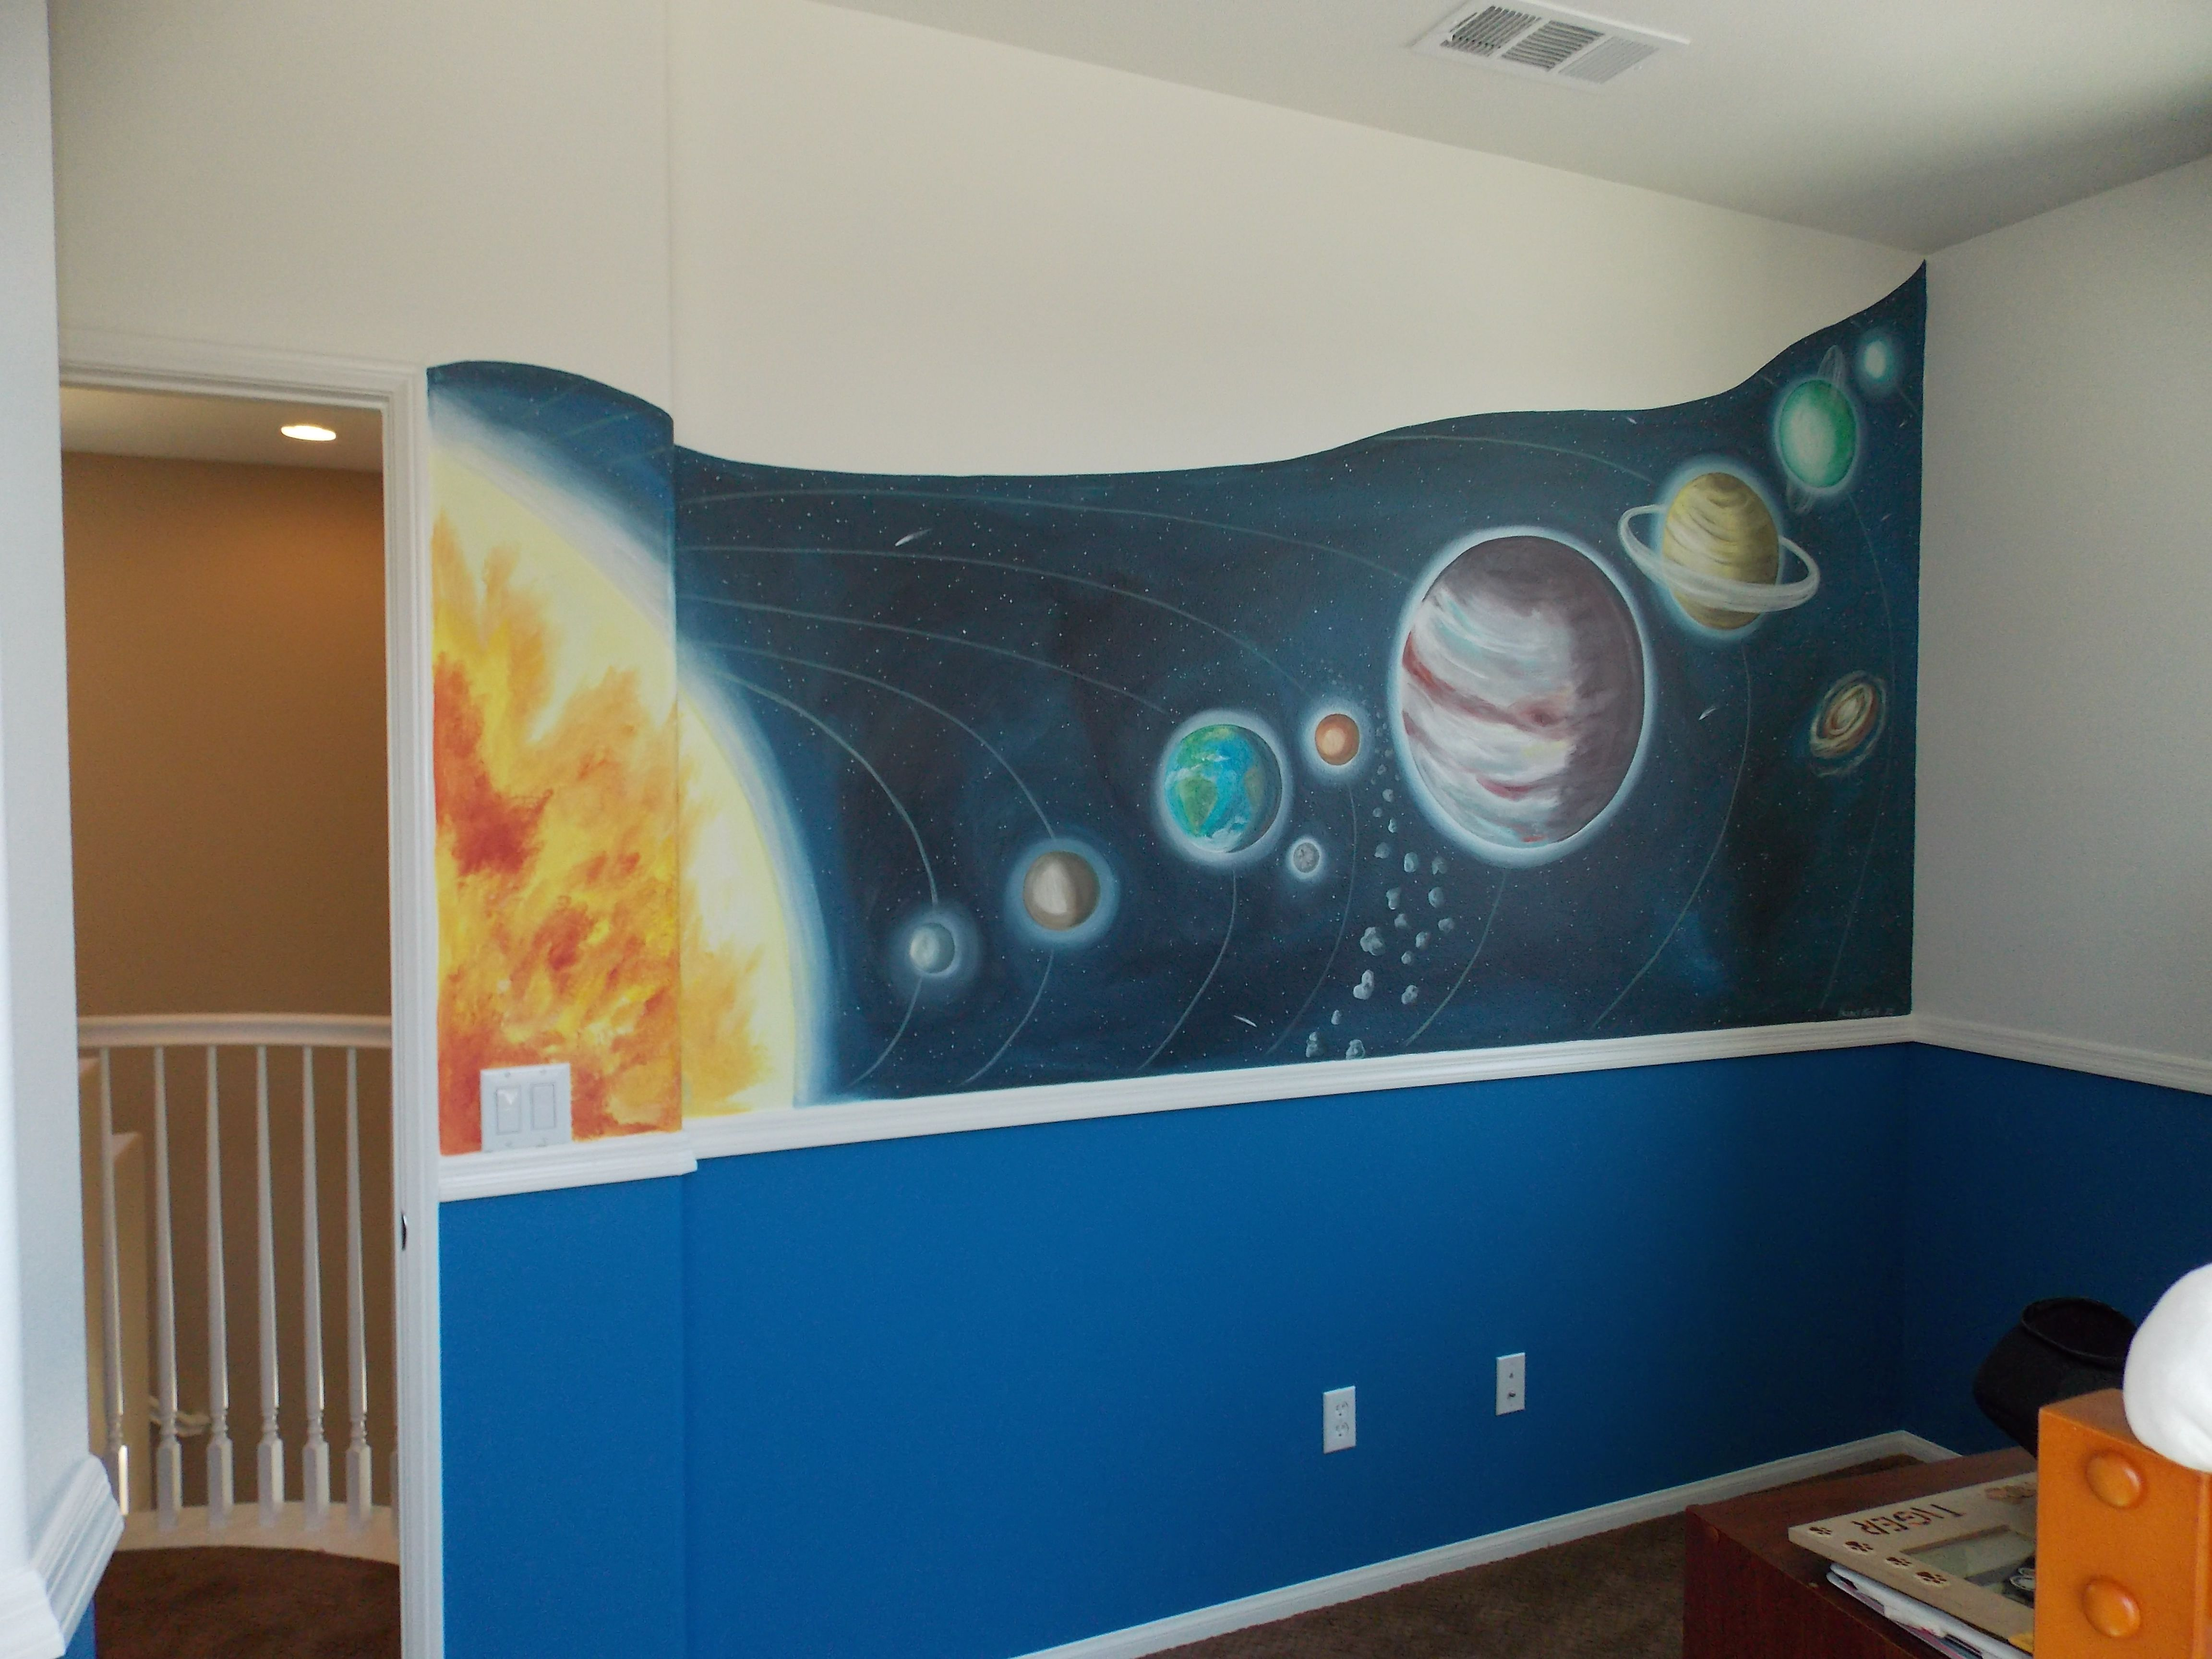 solar system mural fun outer space decor for a bedroom or nursery murals i did paint. Black Bedroom Furniture Sets. Home Design Ideas